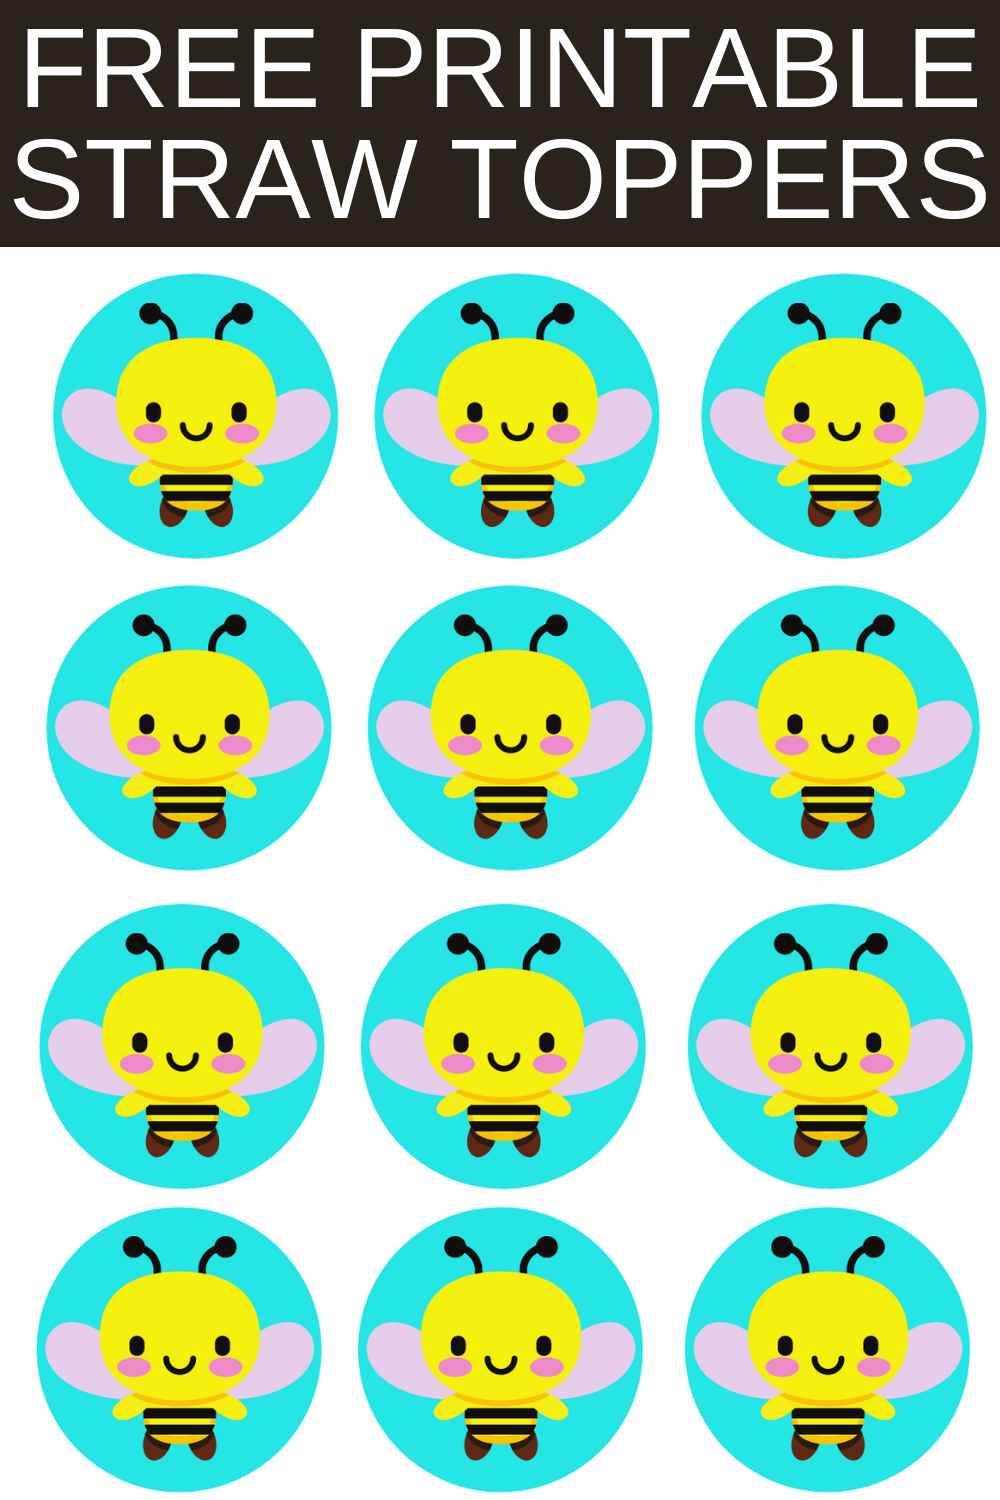 Free printable bumble bee straw toppers are a fun and easy way to add a little extra fun to your 1st birthday bumble bee themed birthday décor. Simply cut and print this free printable bumble bee party idea. Then tape the circle to a fun straw. These can also be used as a cupcake topper. Be sure to save this cute bumble bee cupcake idea for later use.